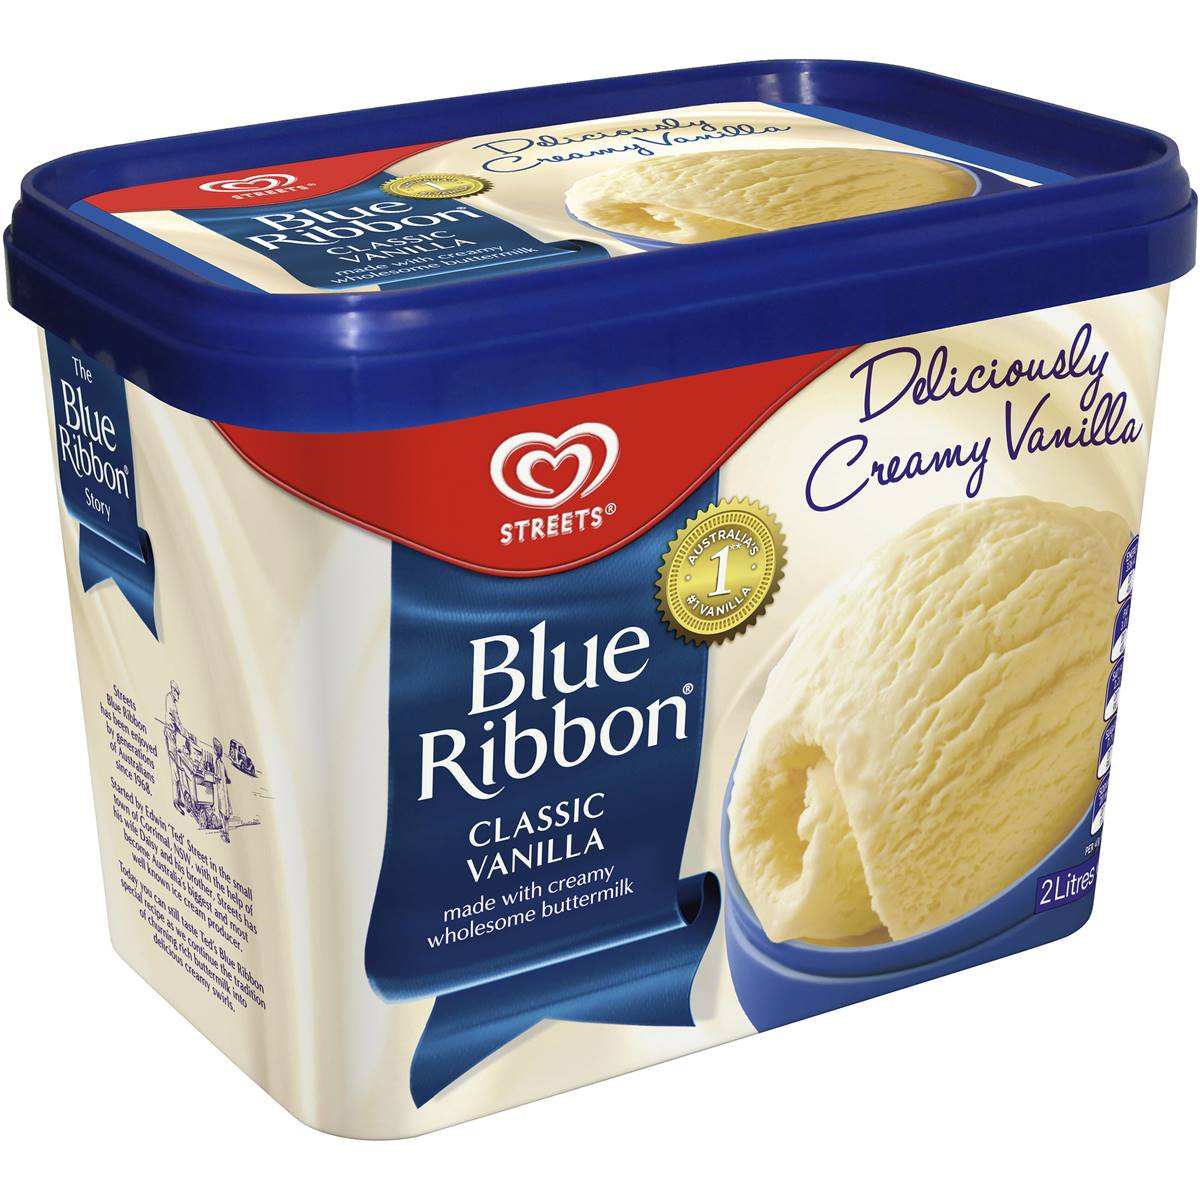 Blue Ribbon Food Delivery Service